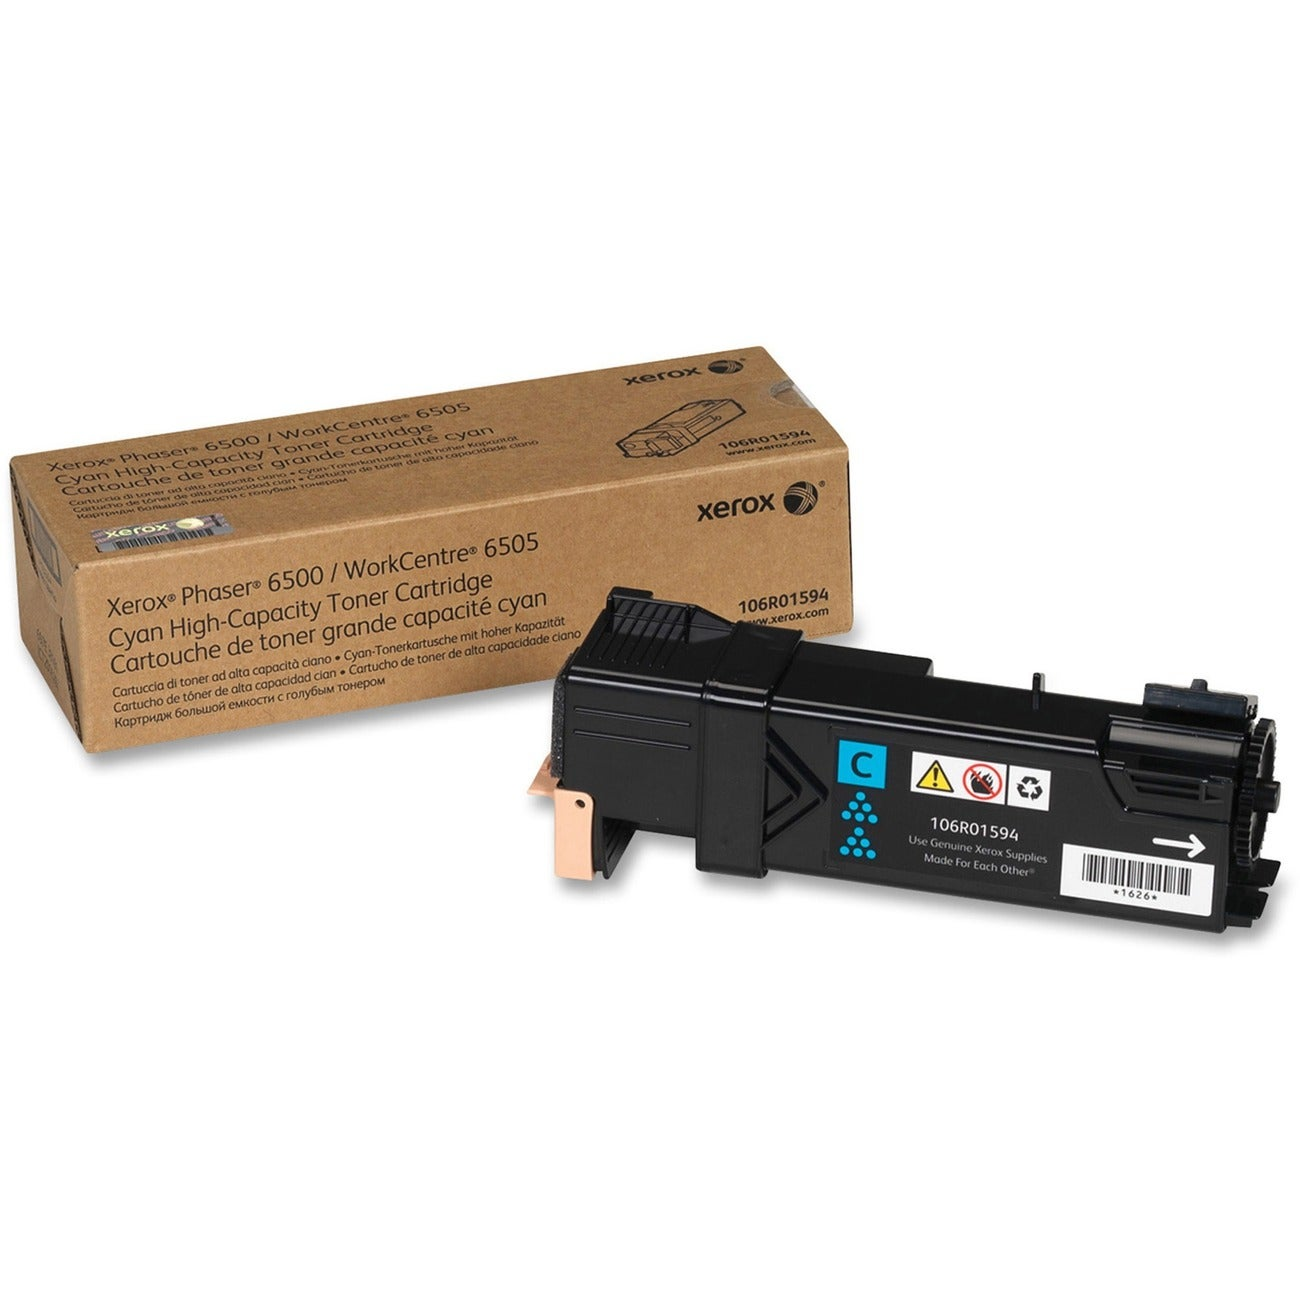 Xerox 106R01594 High Capacity Toner Cartridge